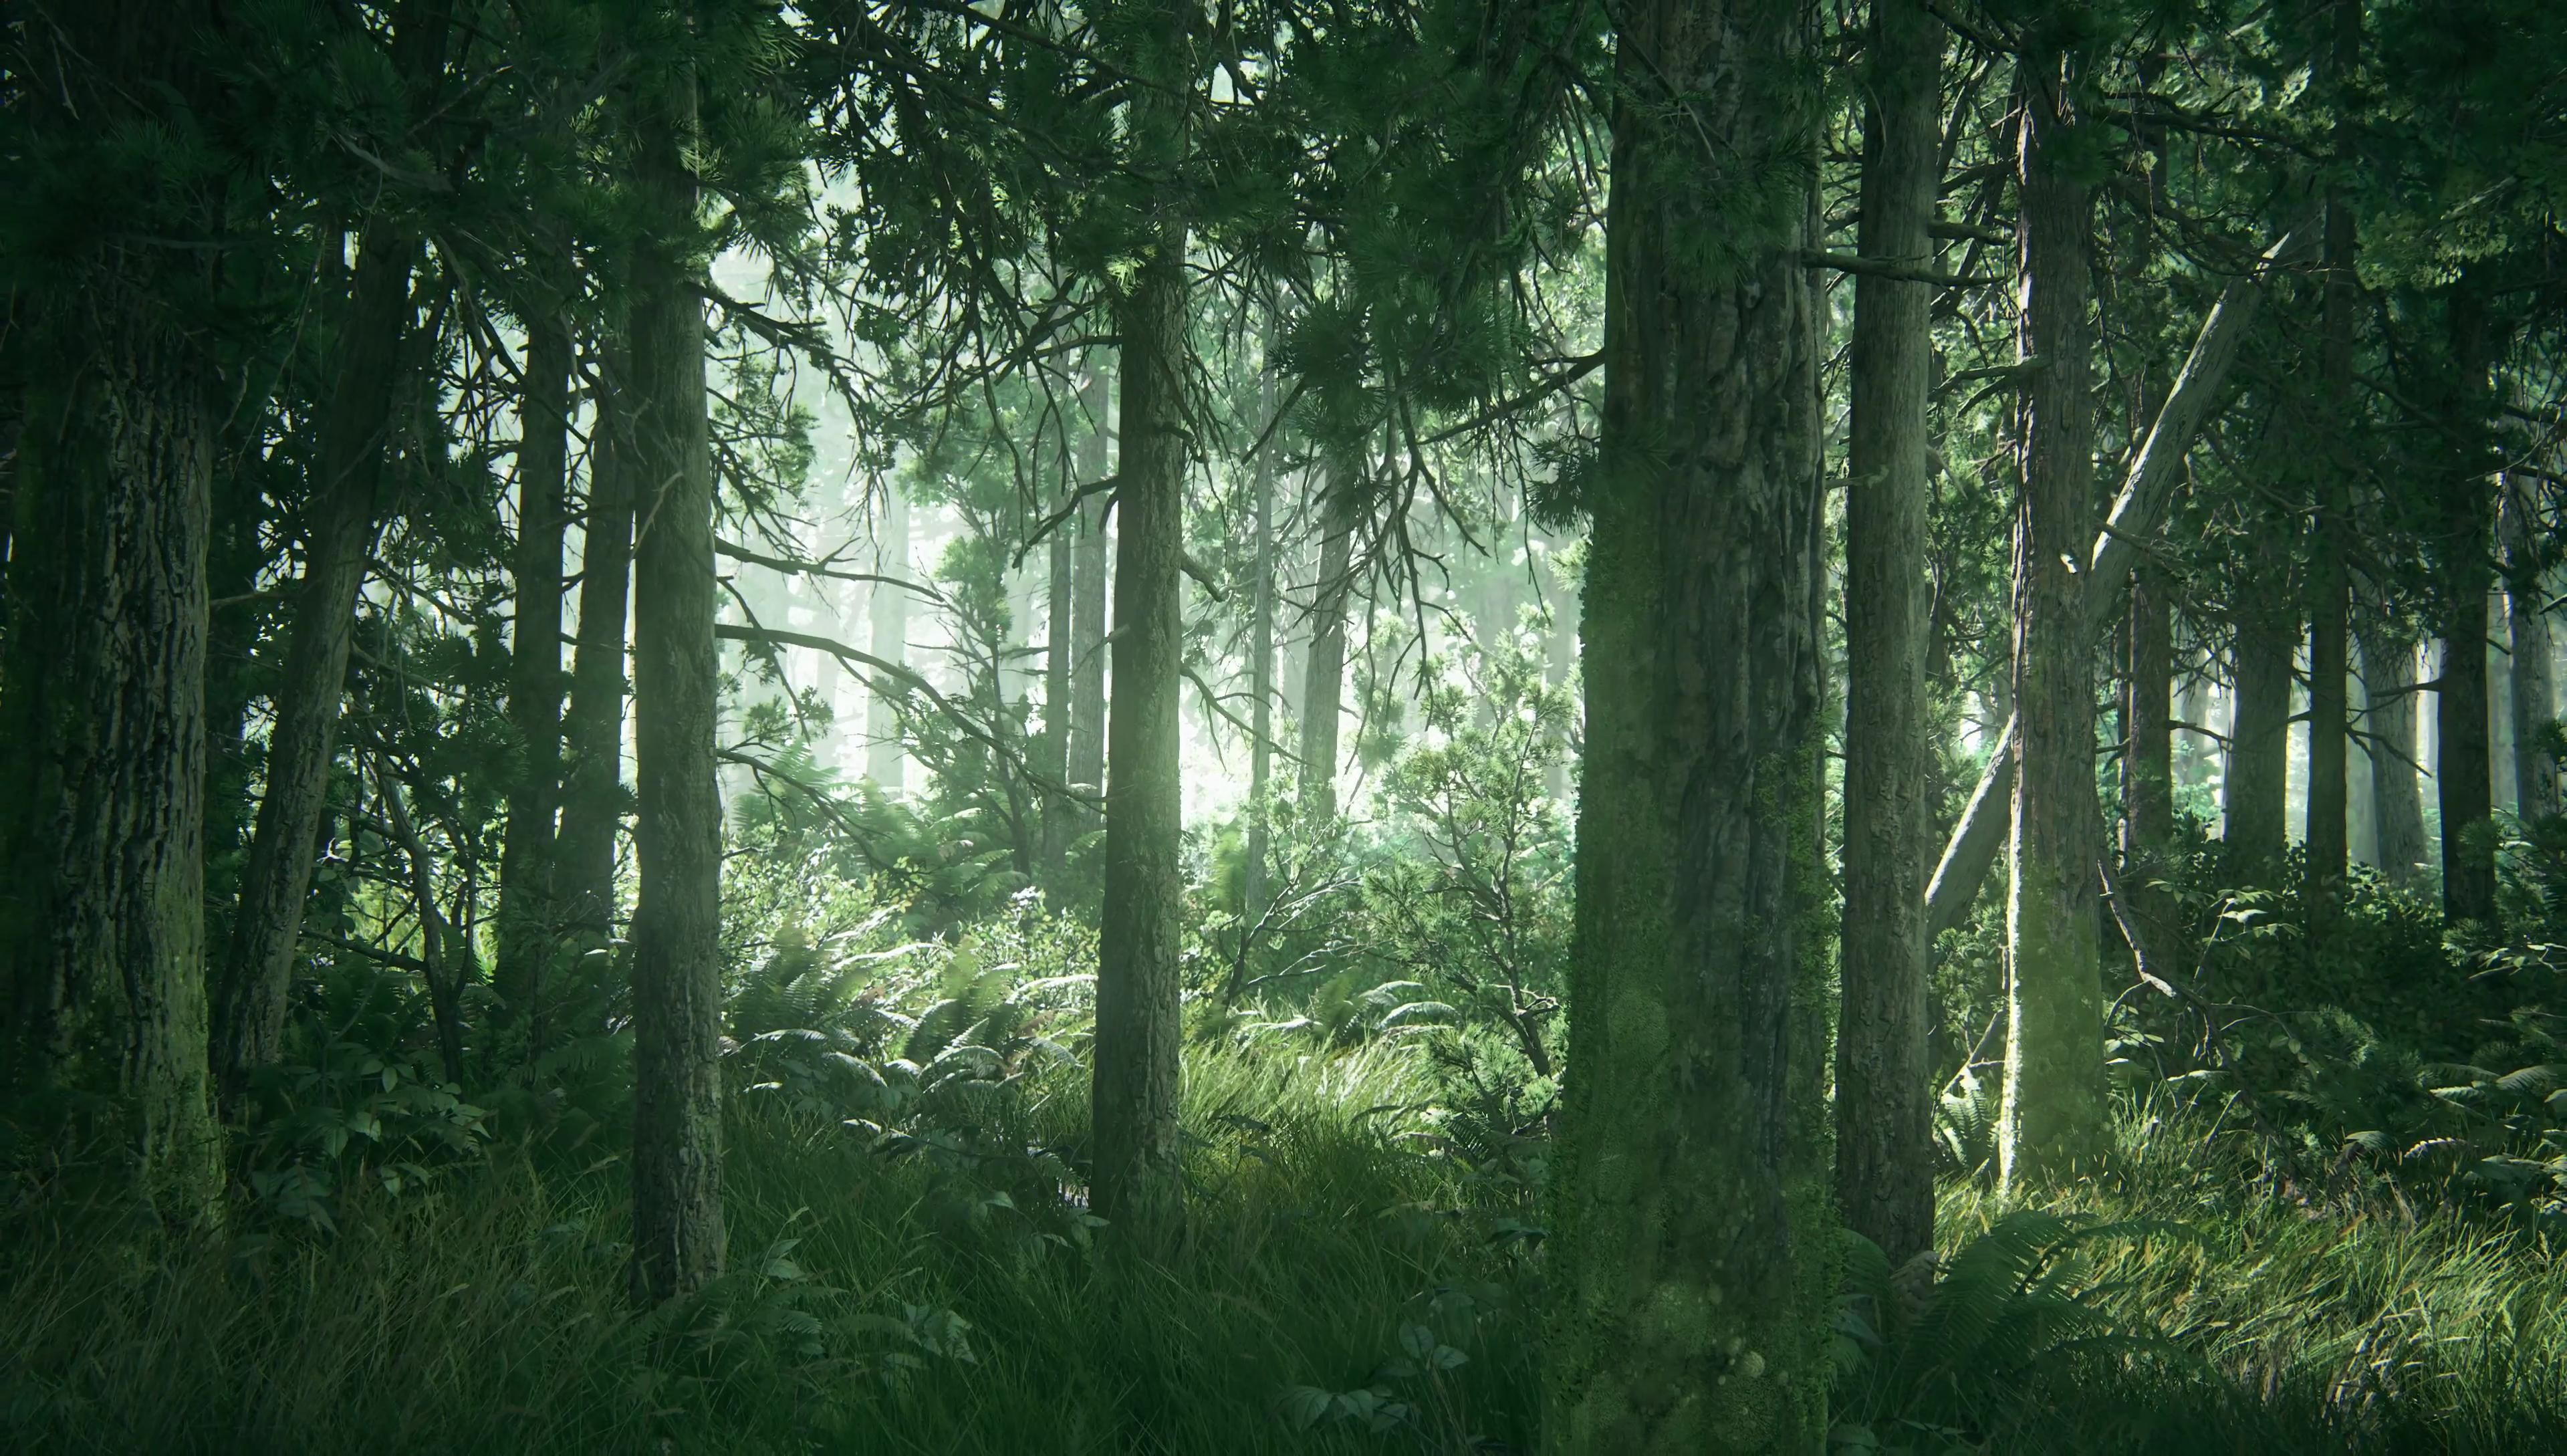 The Last of Us Part 2 - 38 4K Screenshots/Wallpapers   Avatar images, Fantasy places, Live ...